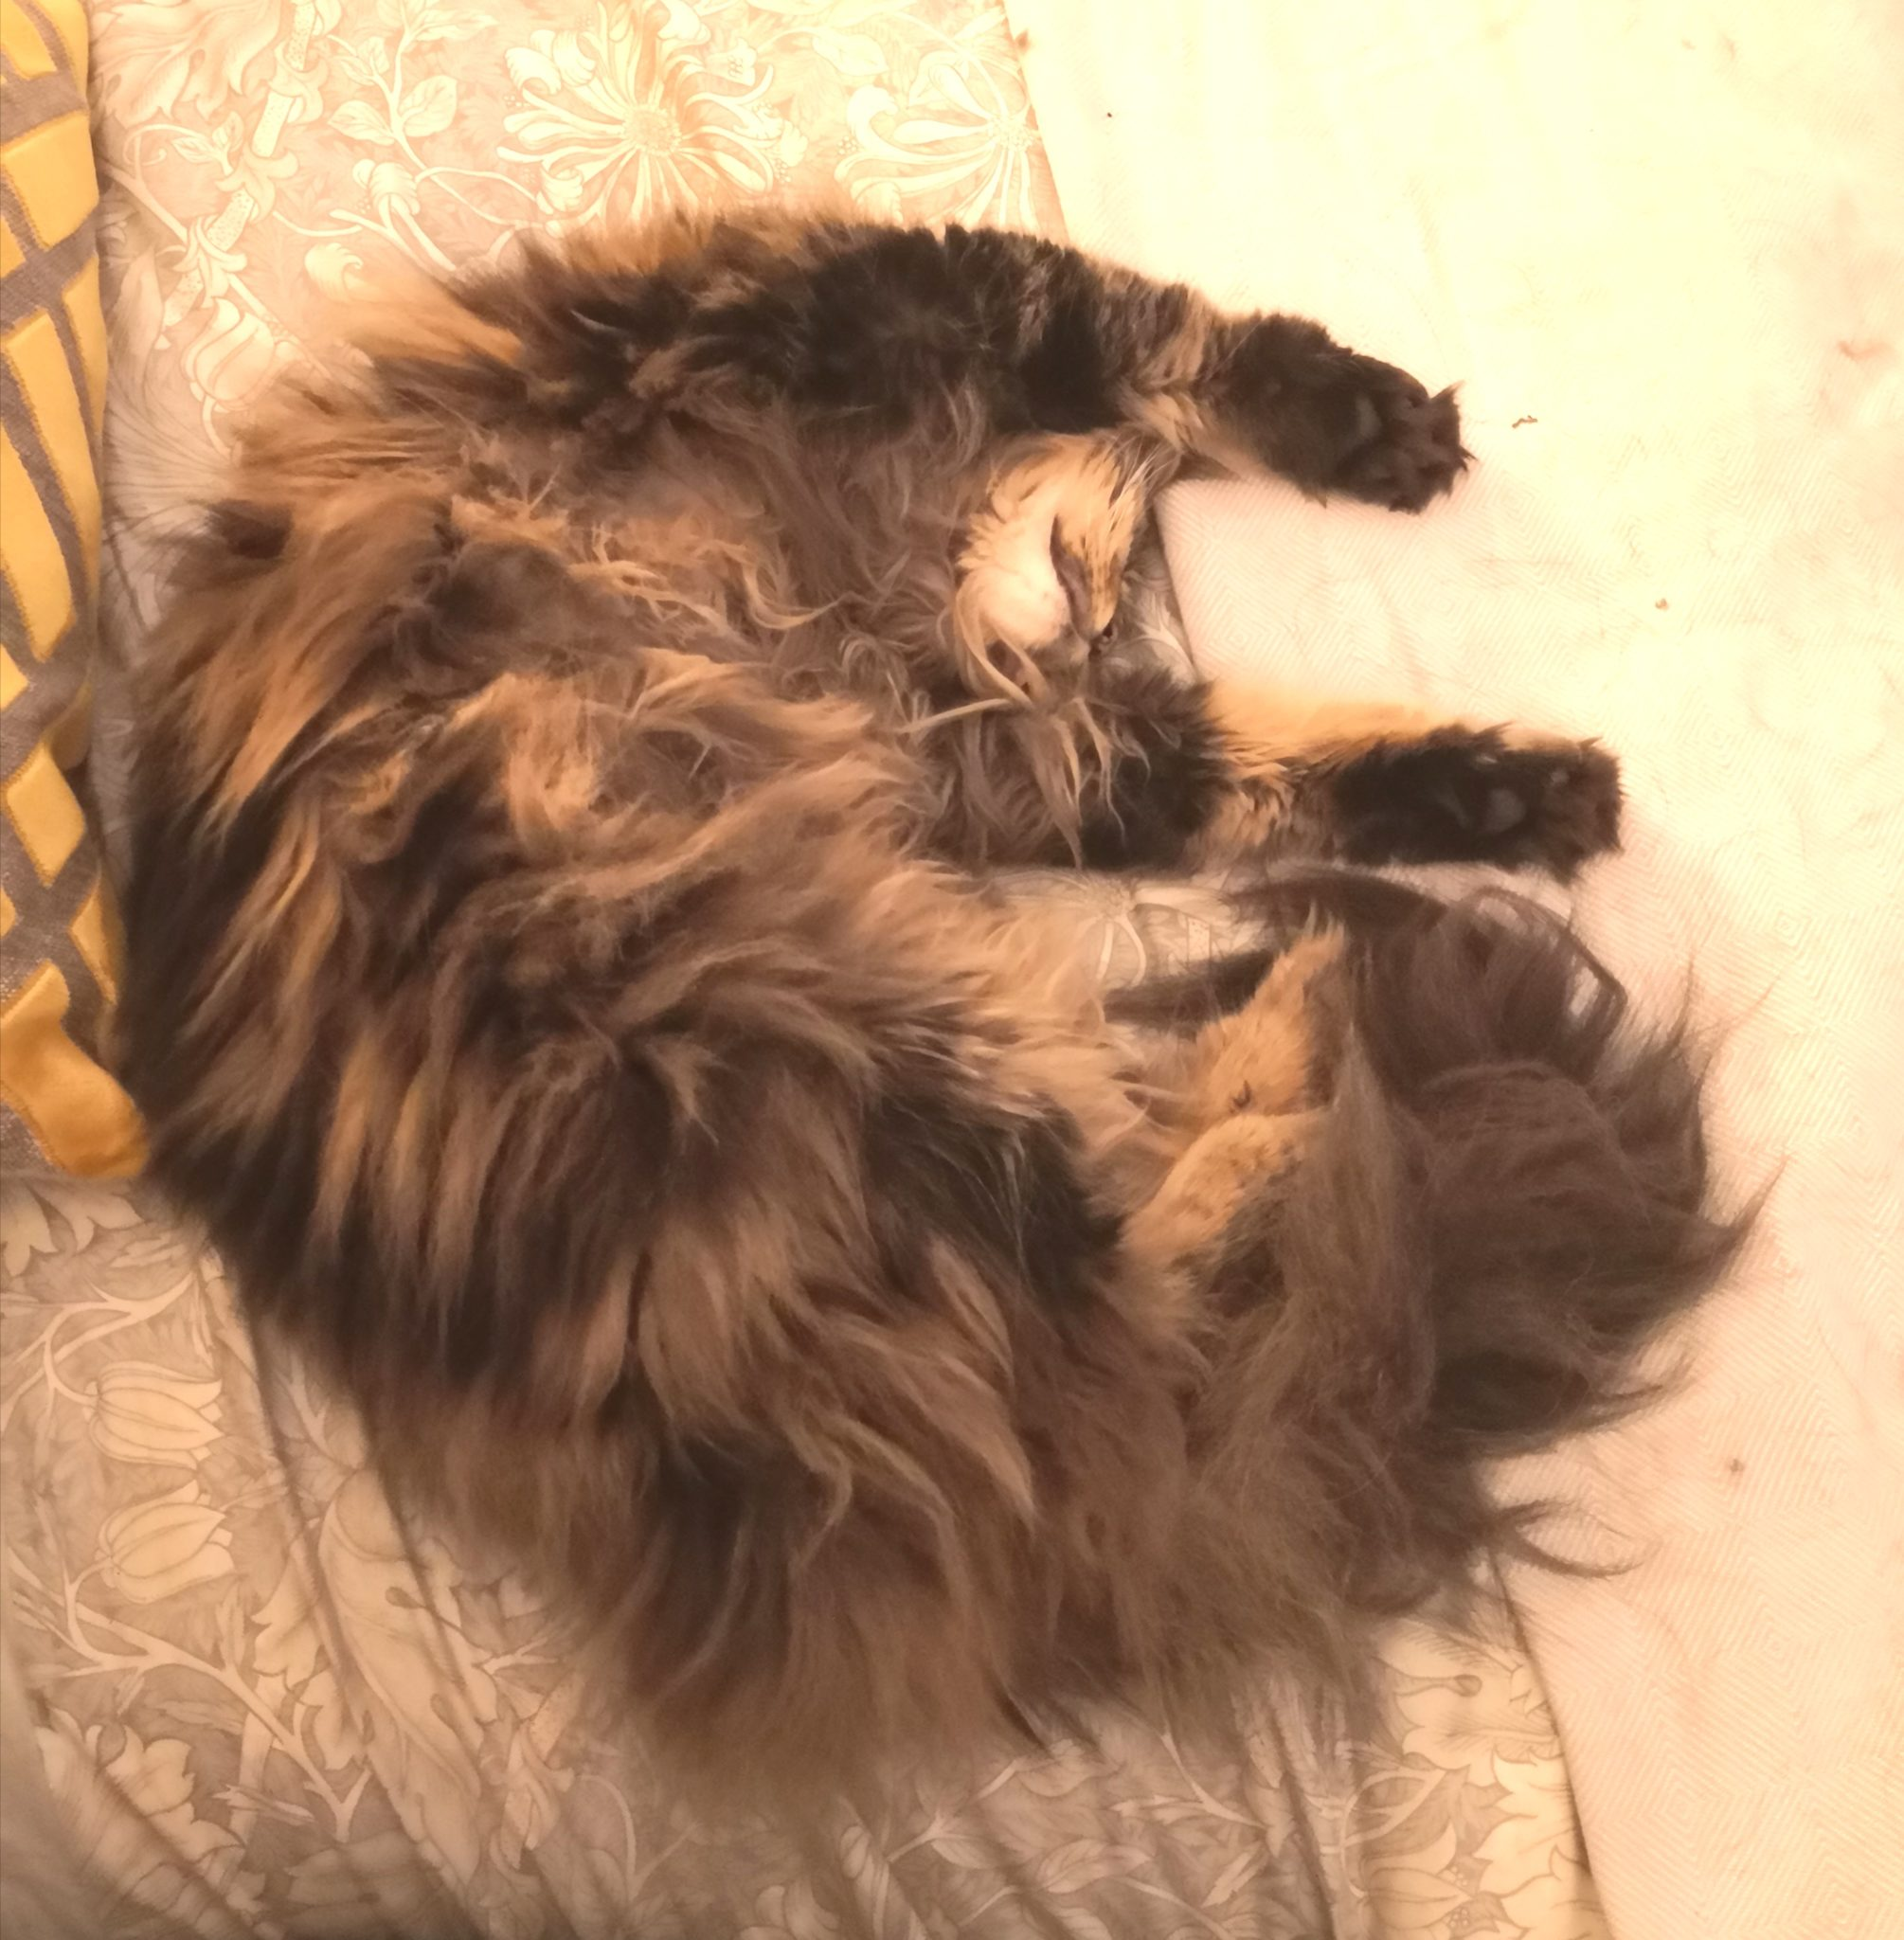 brush your cat - photo of long-haired cat curled up on a bed